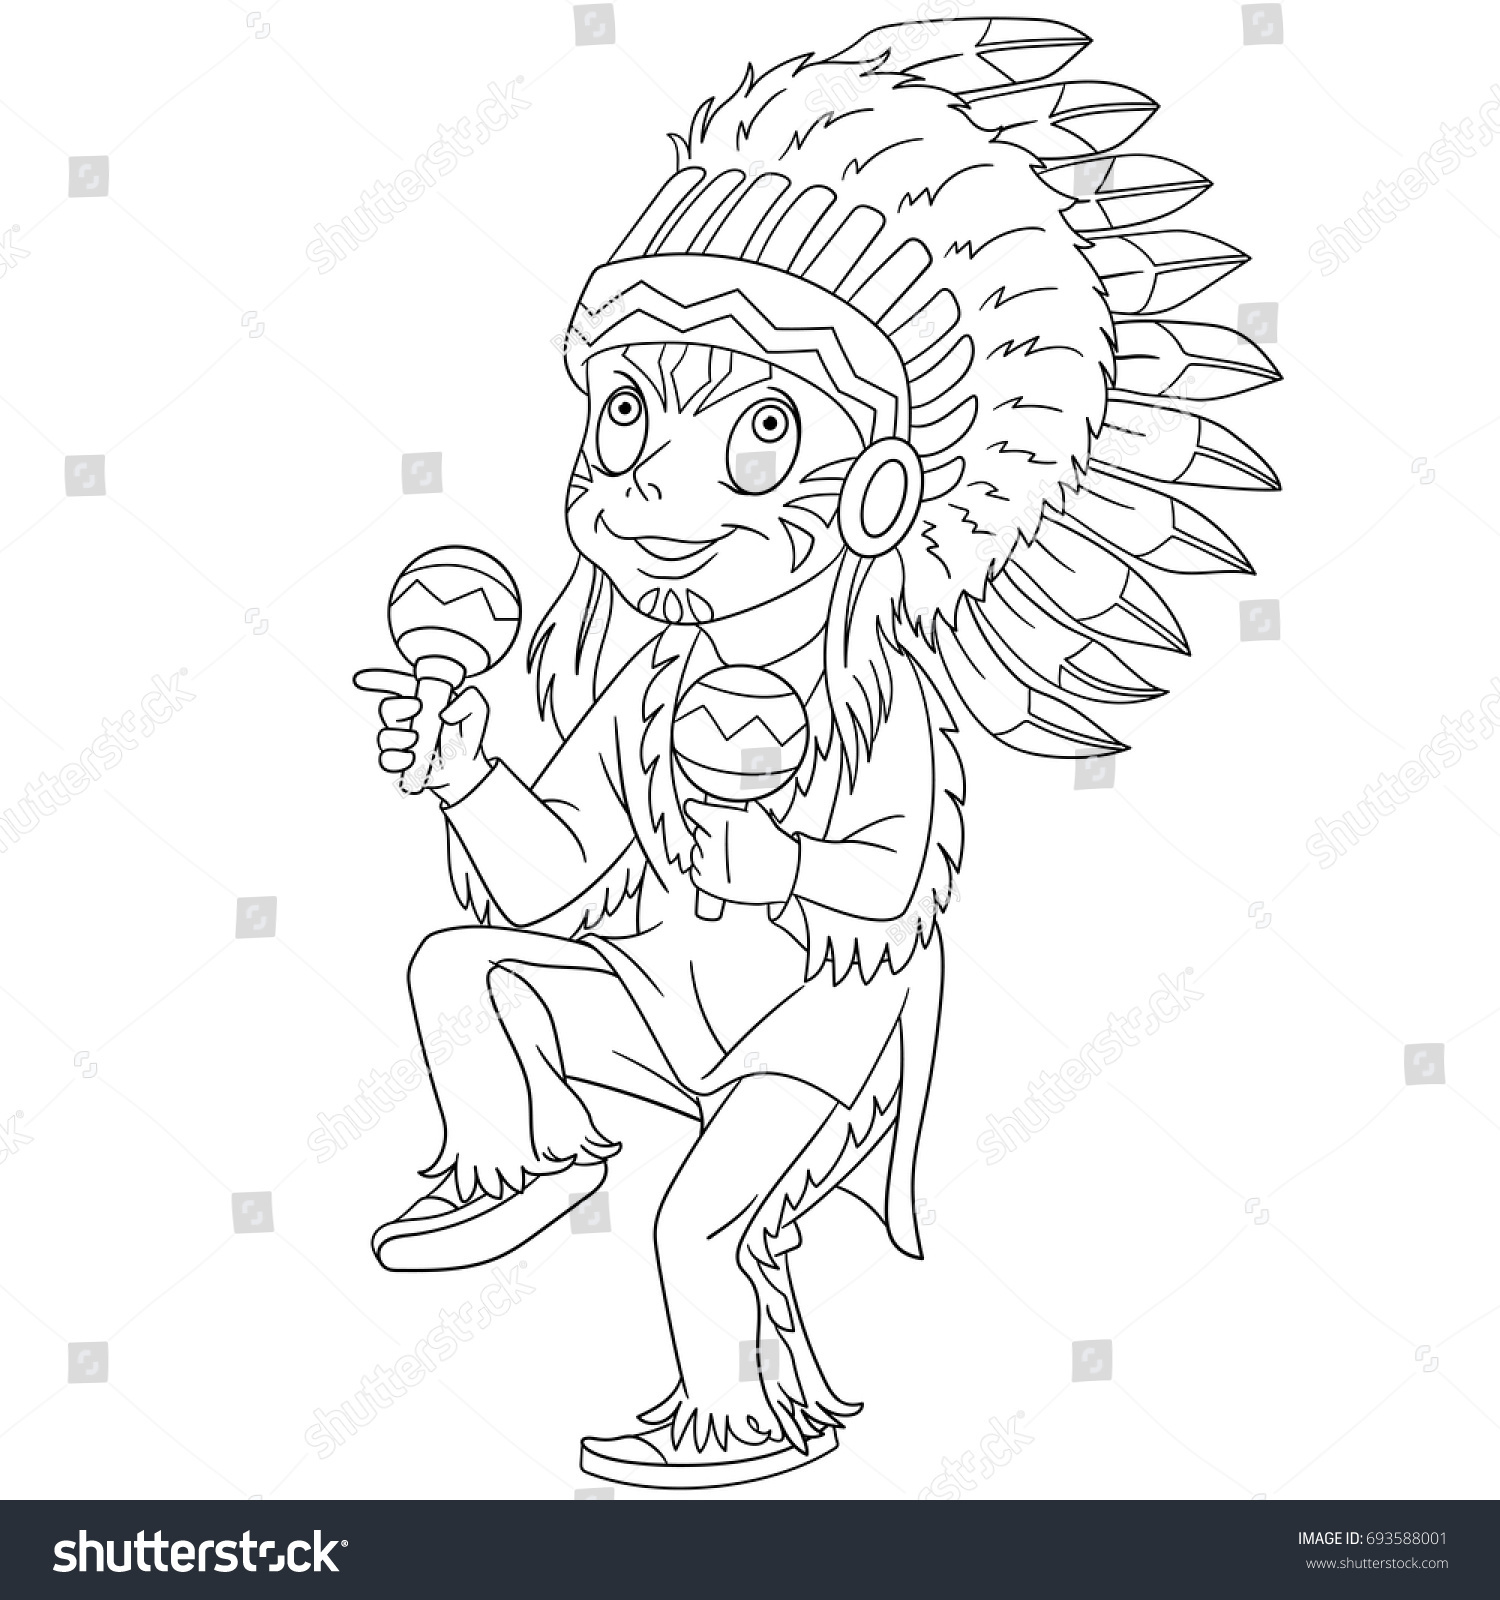 coloring page of cartoon native american indian chief coloring book design for kids and children - Native American Coloring Book